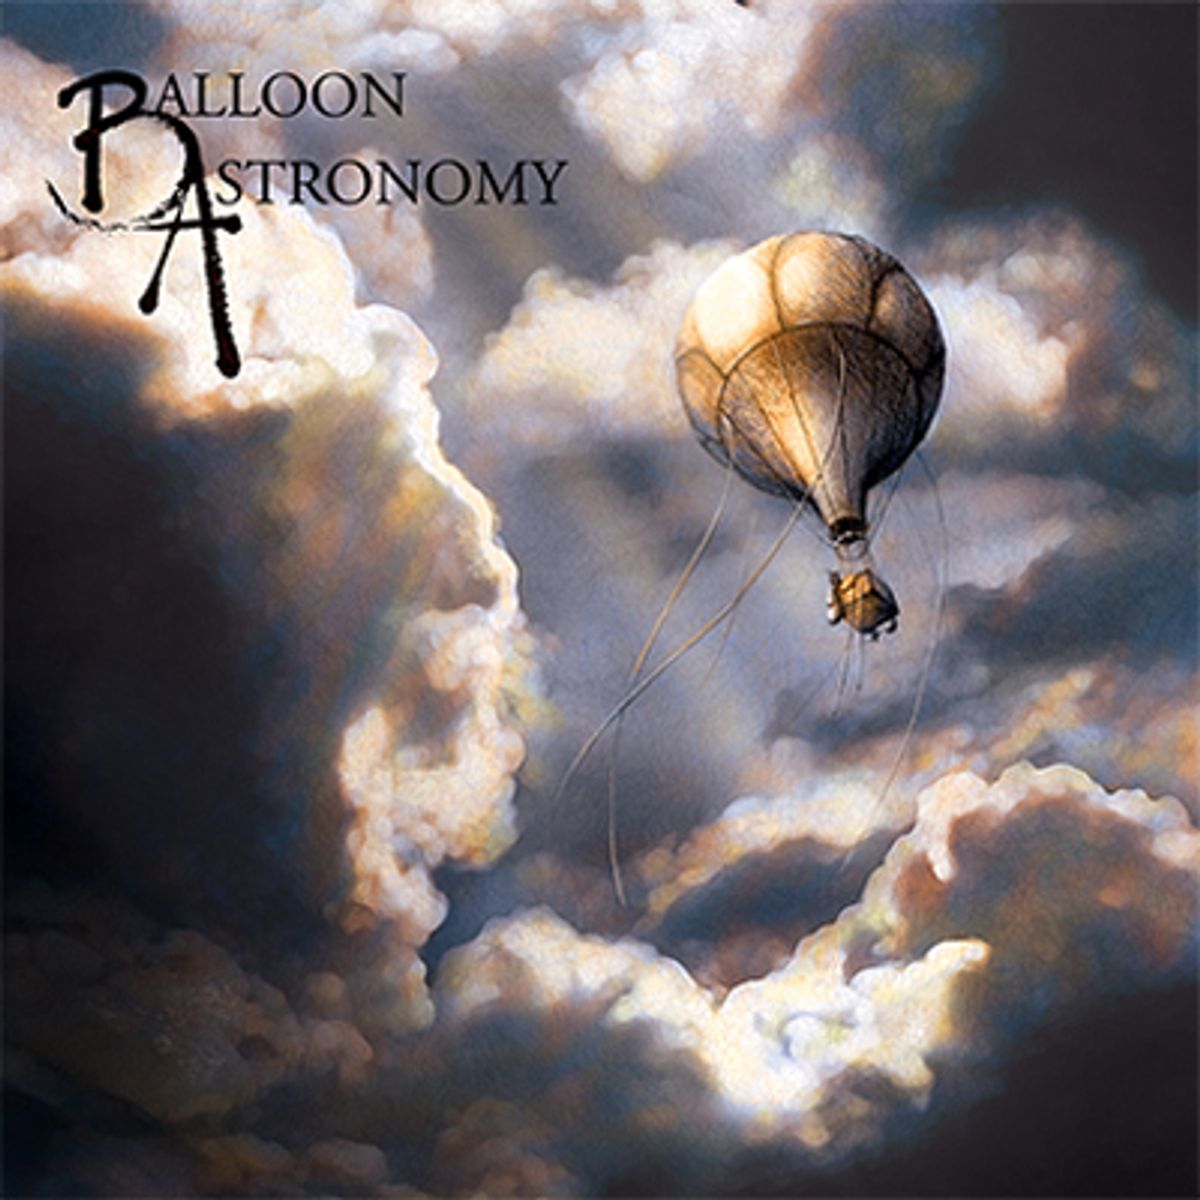 Balloon Astronomy